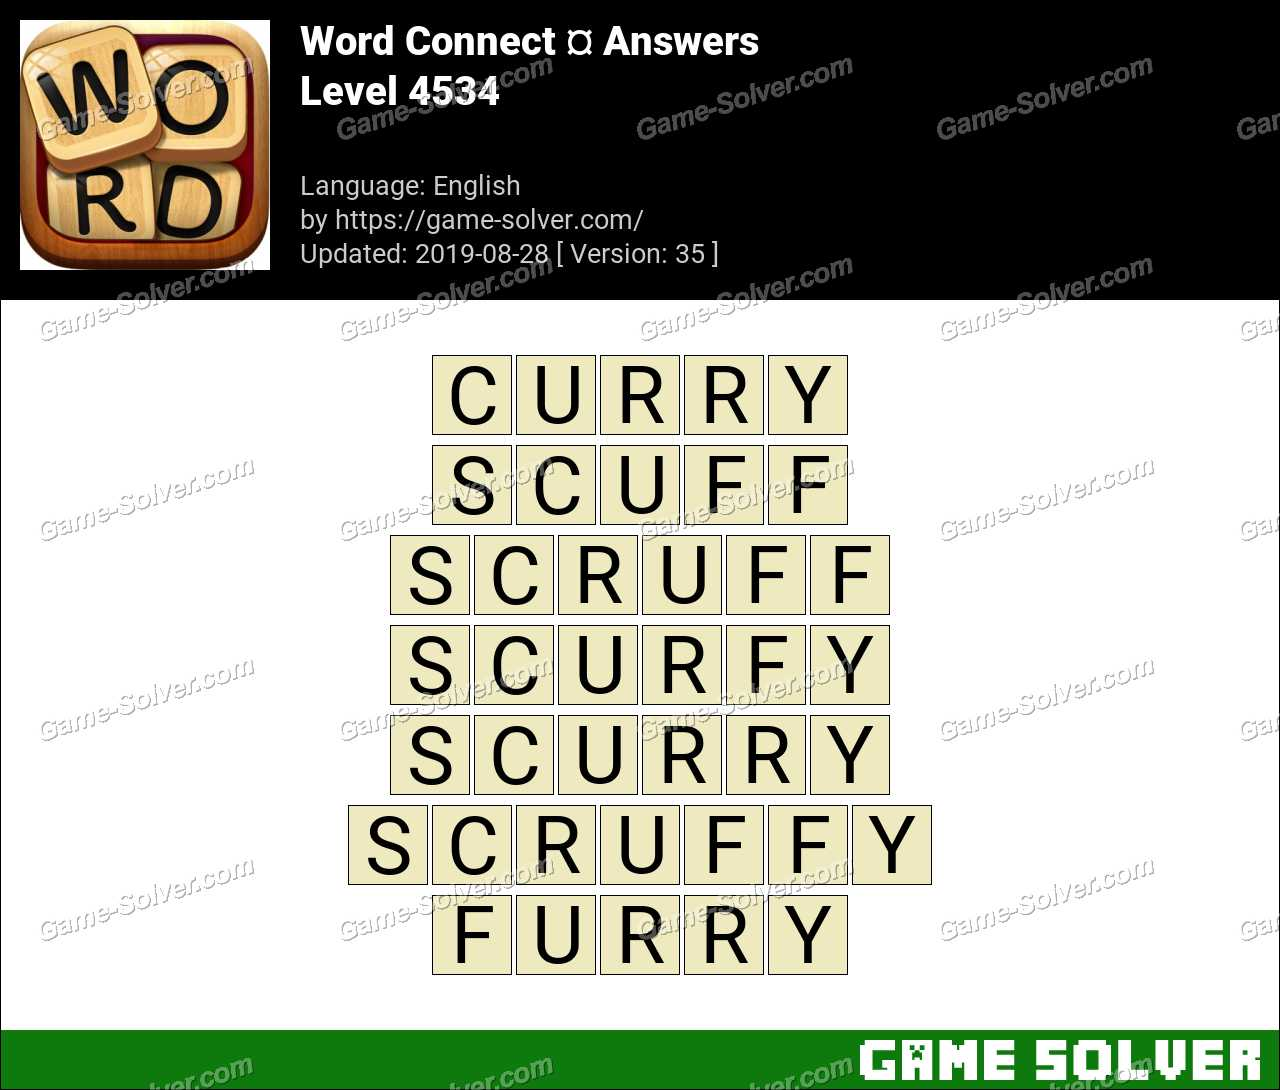 Word Connect Level 4534 Answers